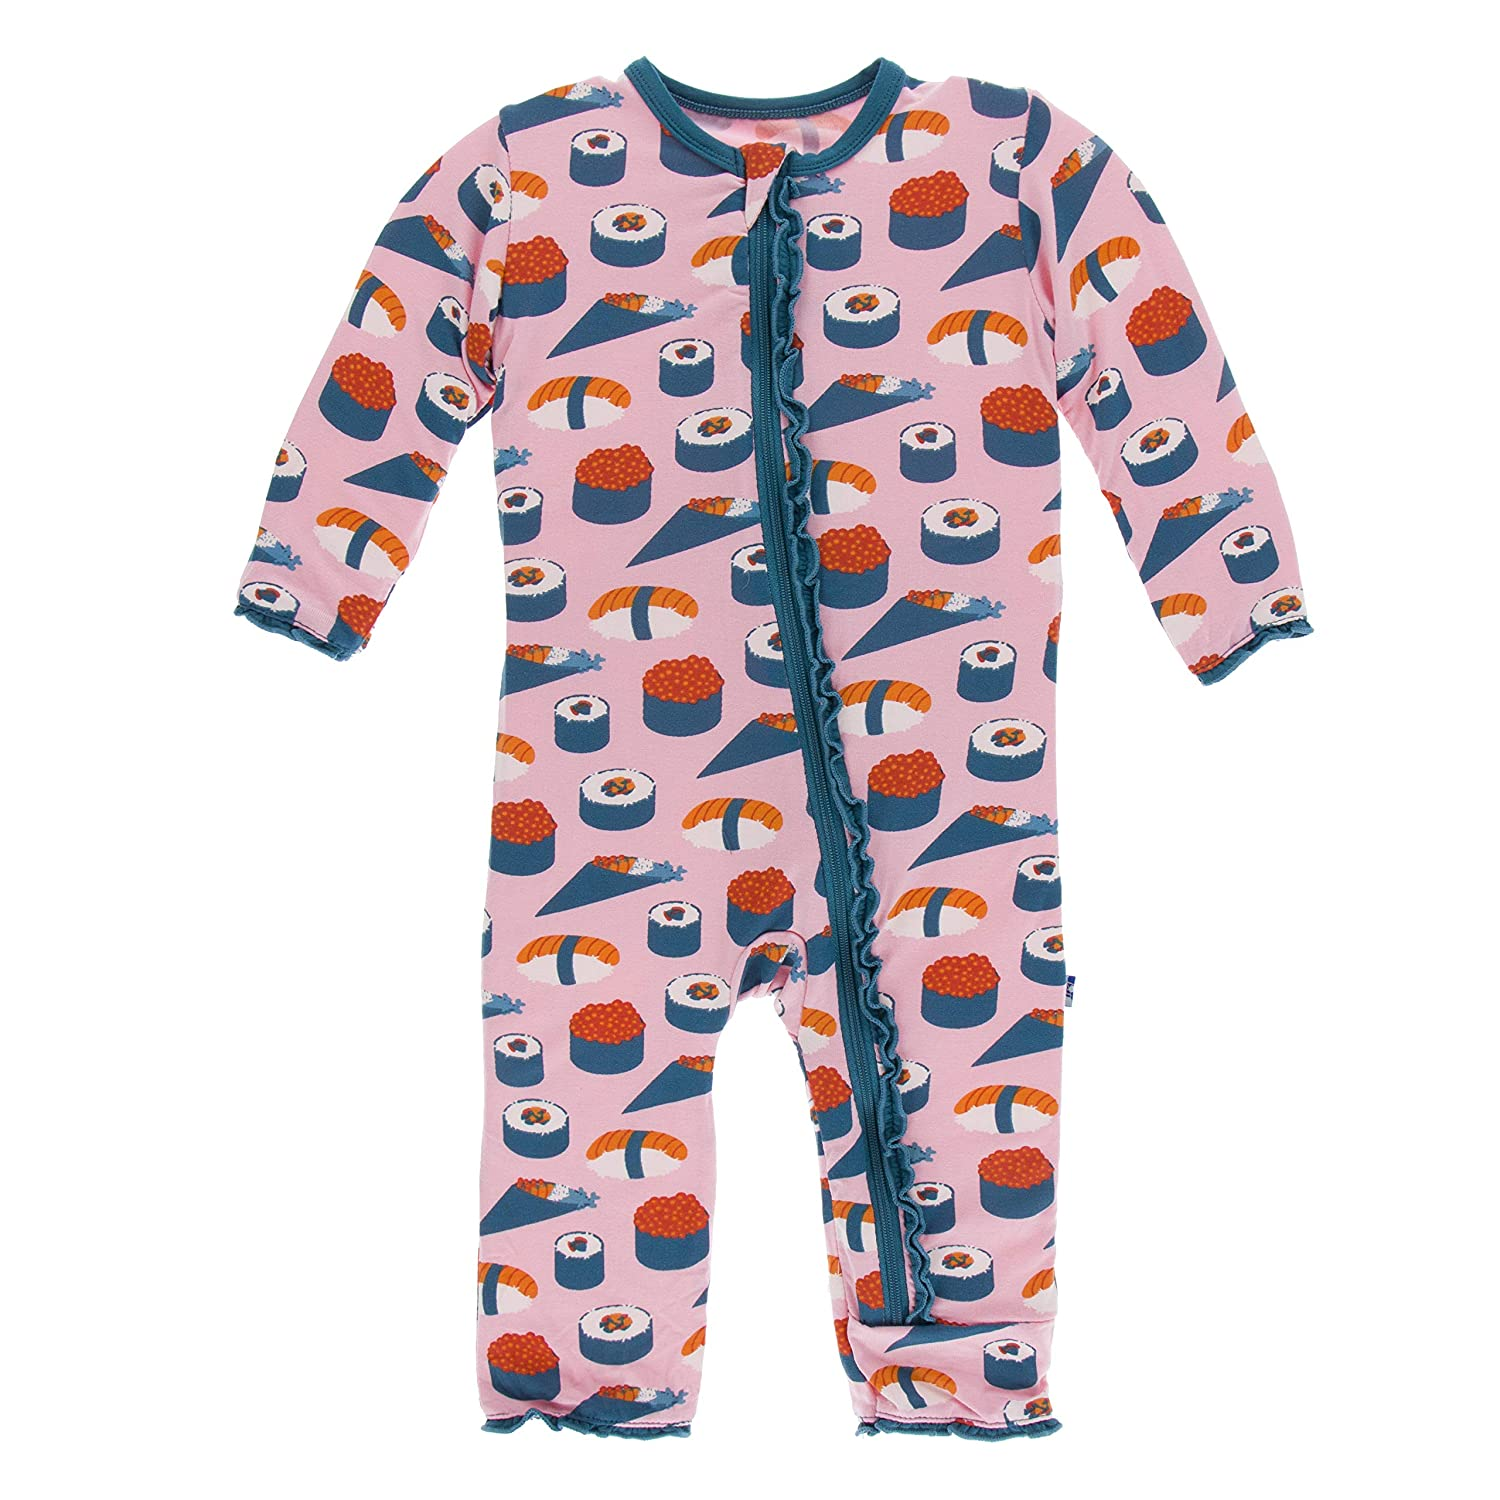 6 Years KicKee Pants Print Muffin Ruffle Coverall with Zipper in Lotus Sushi